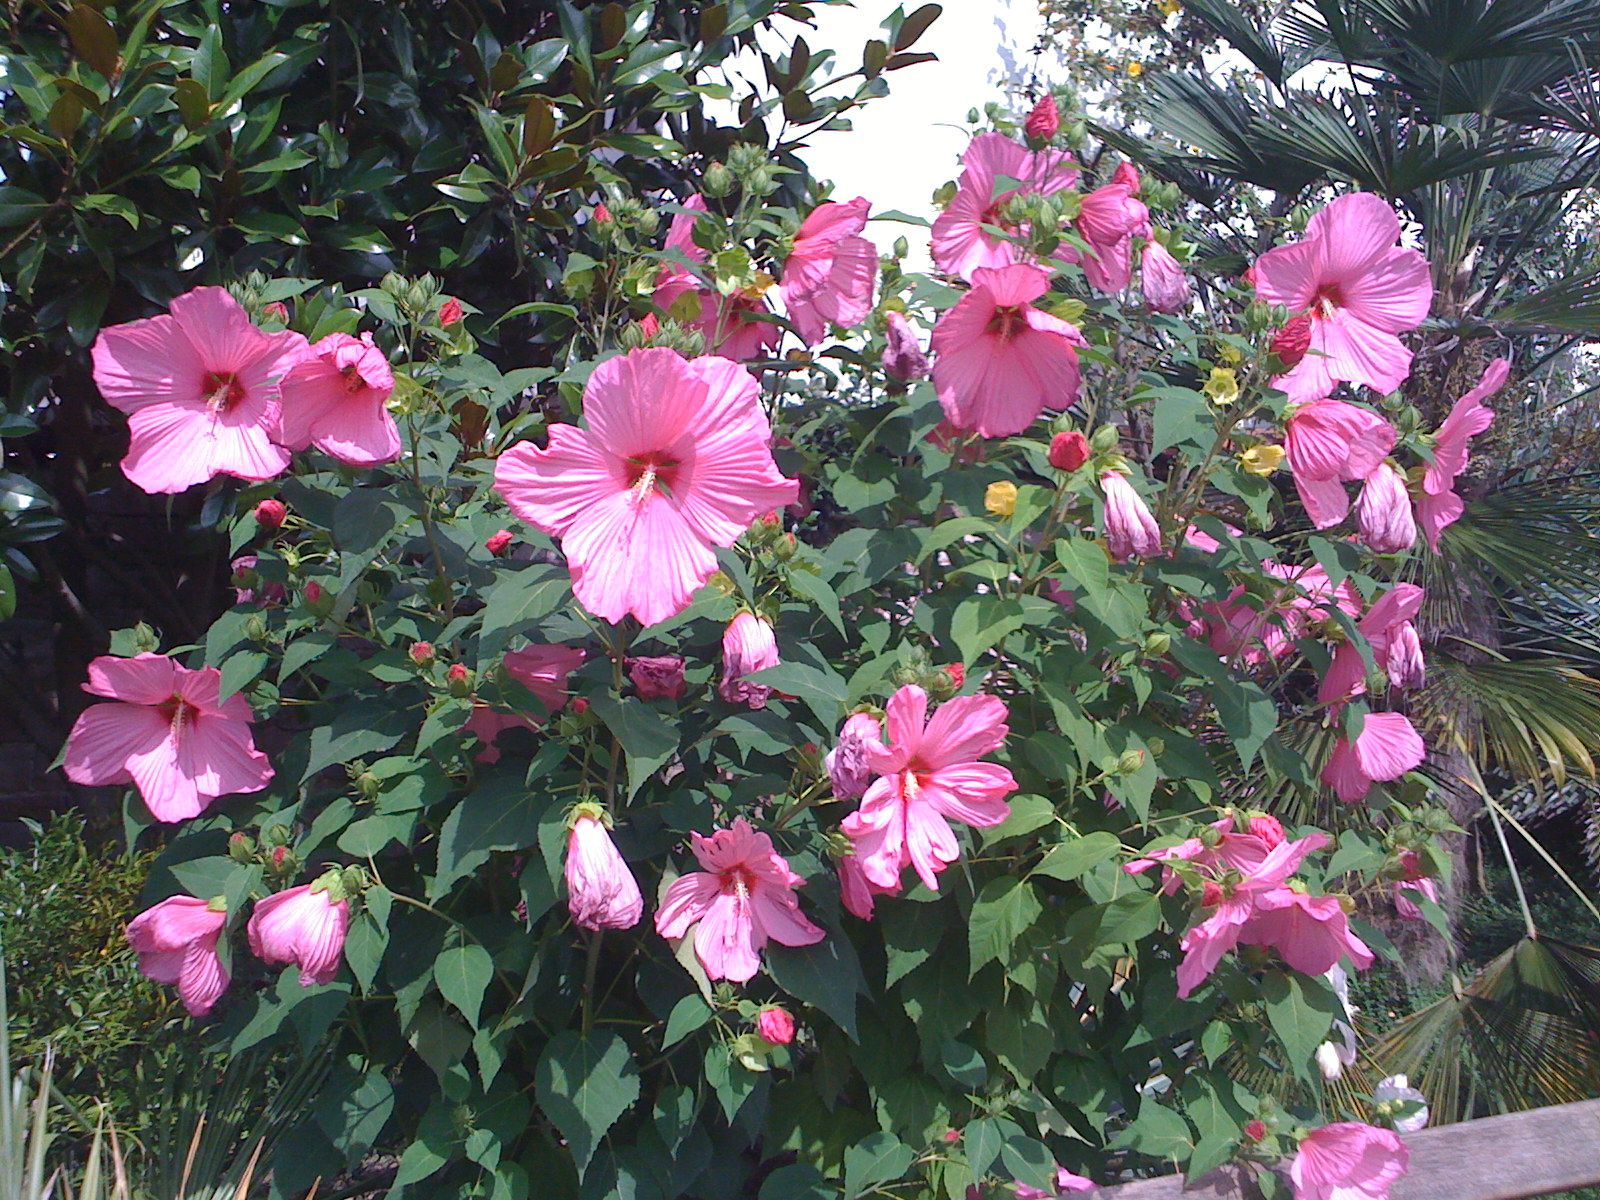 Pin by kathy bacon on roses 6 pinterest explore plant care gardening tips and more izmirmasajfo